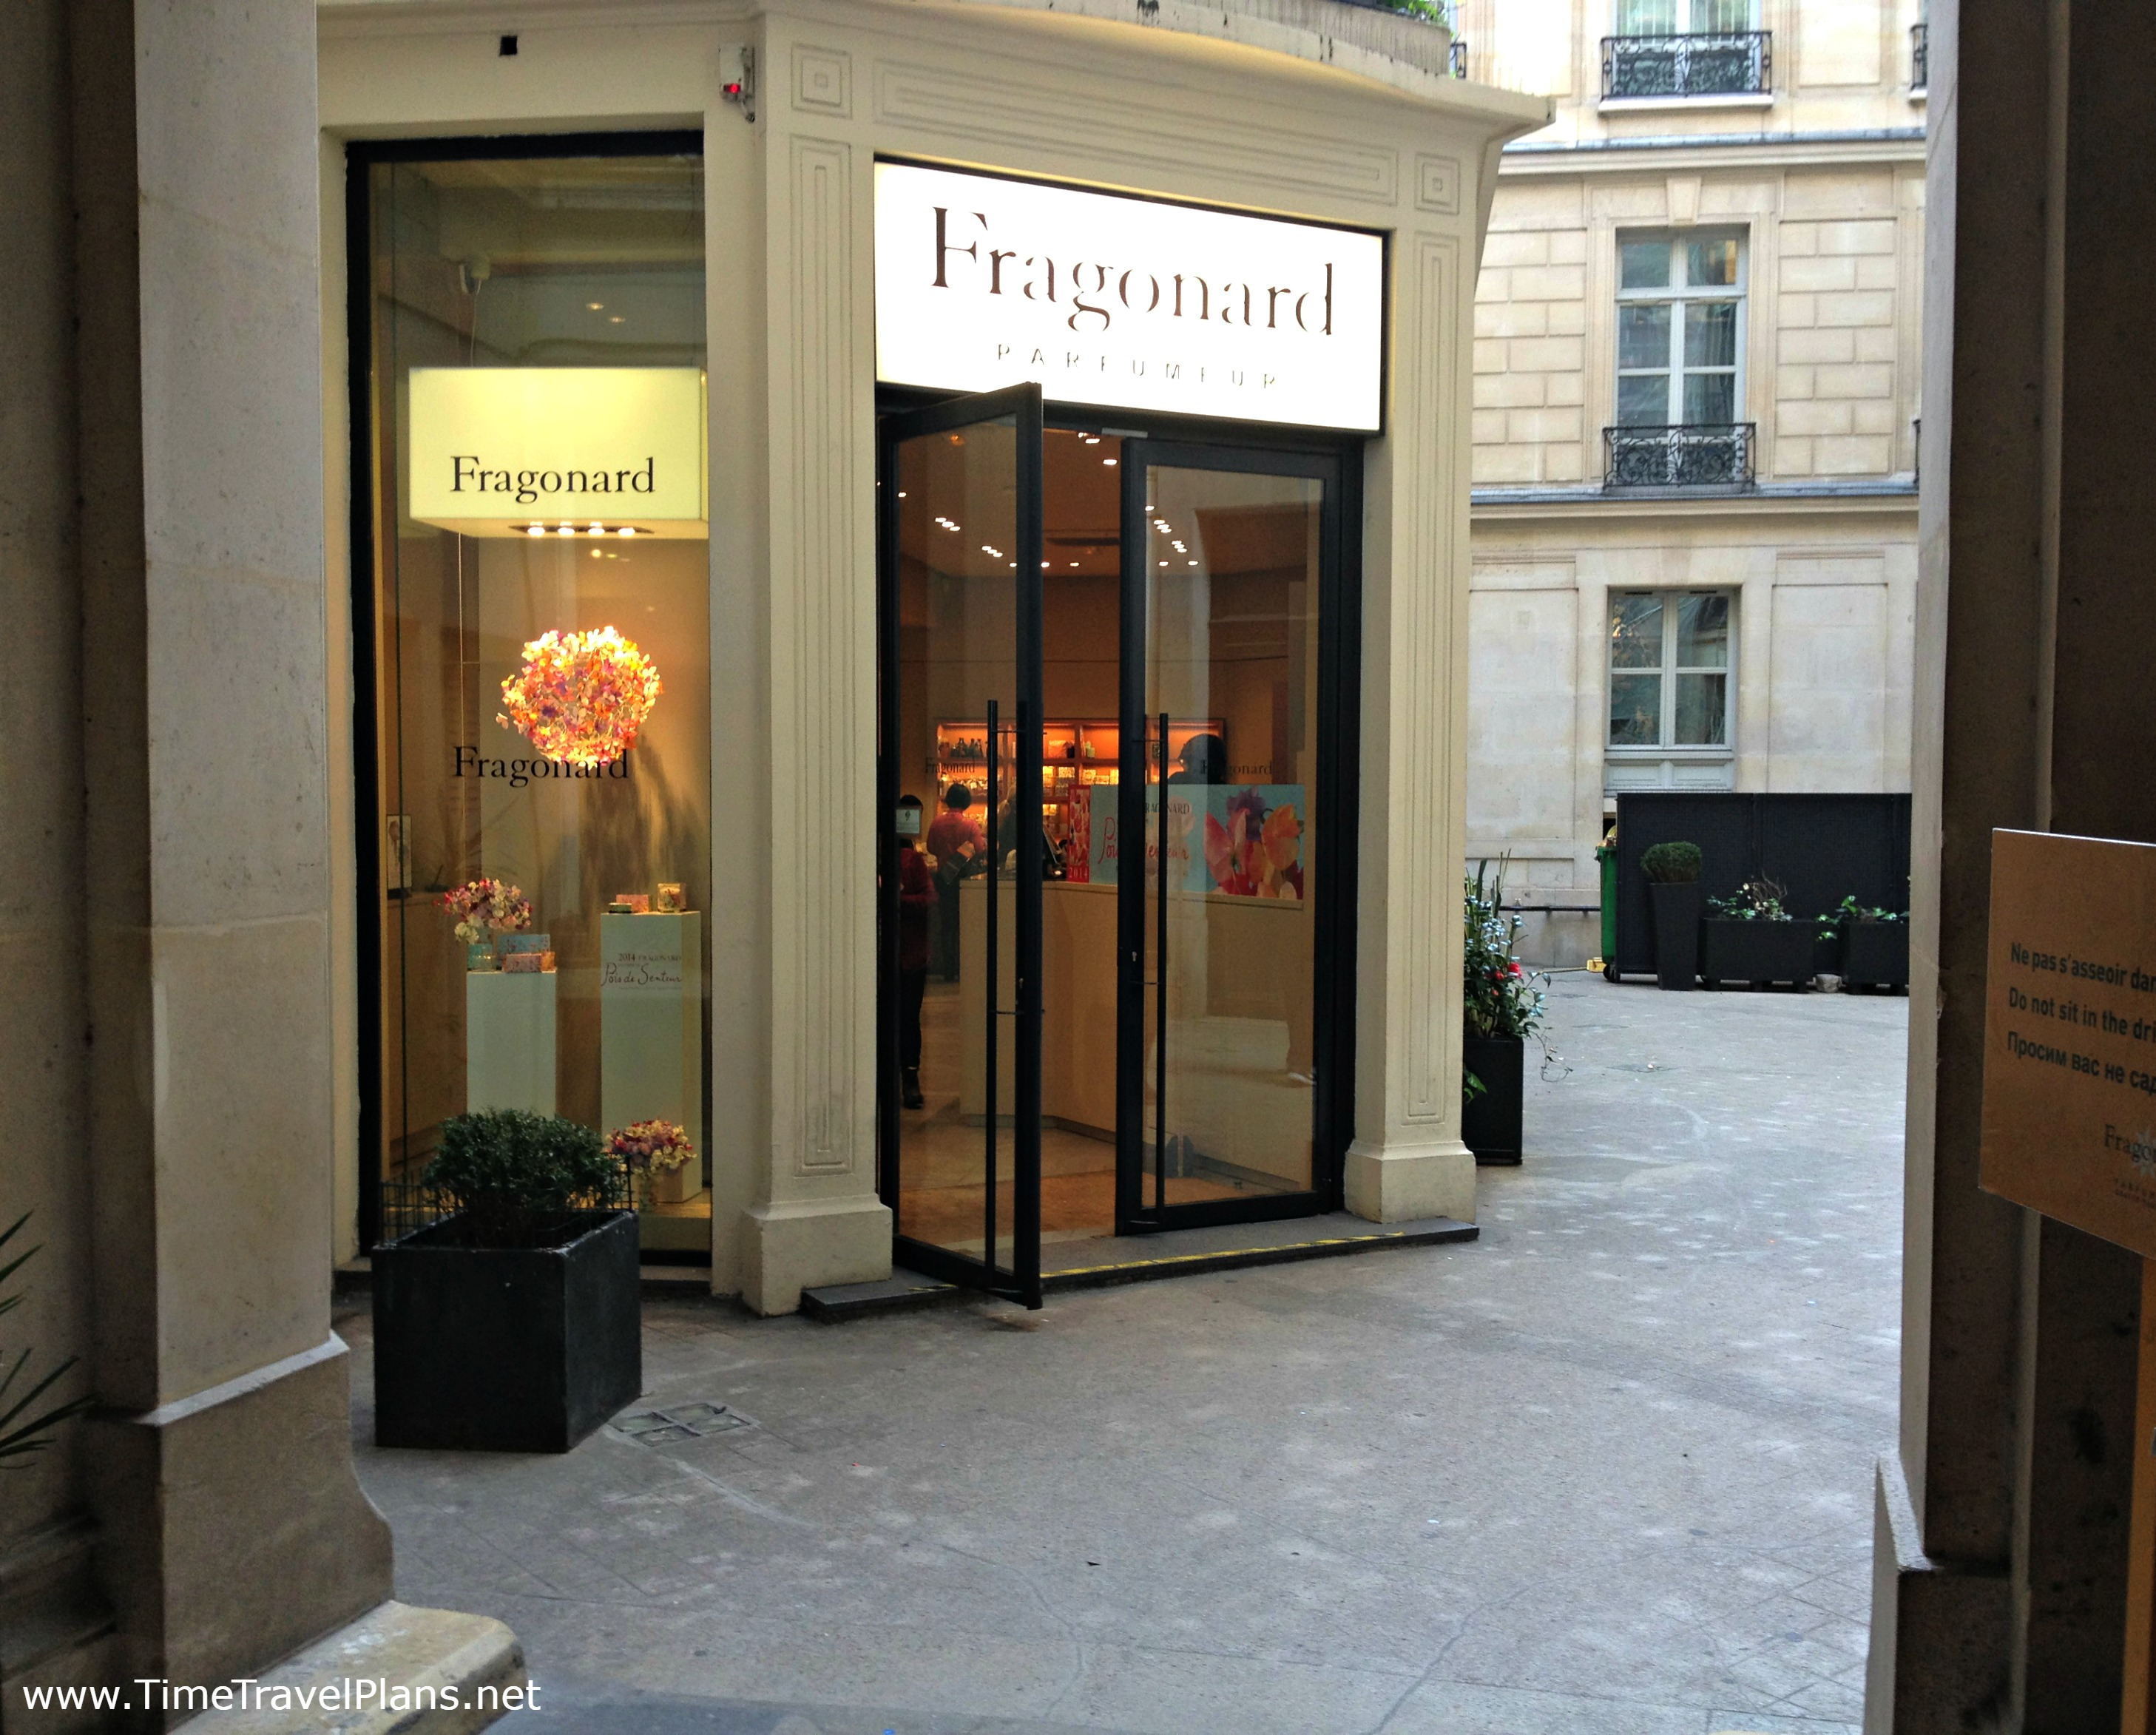 Smells Like Fragonard Thatgirlcarmel